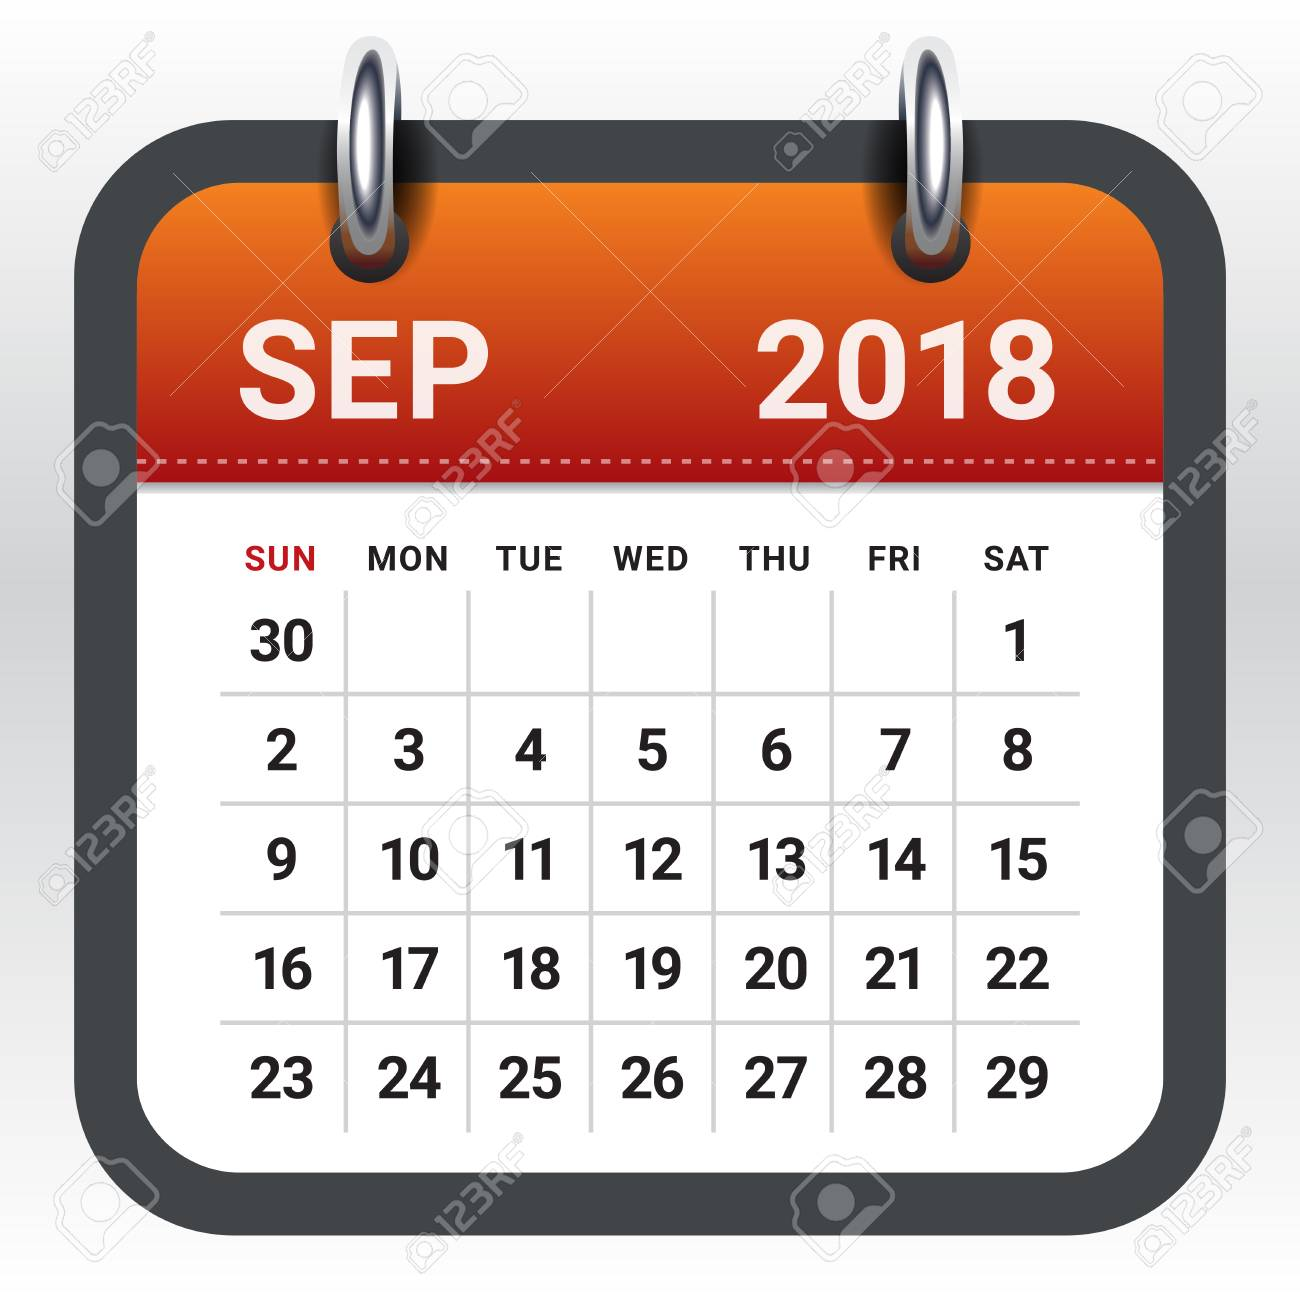 September 2018 calendar vector illustration, simple and clean